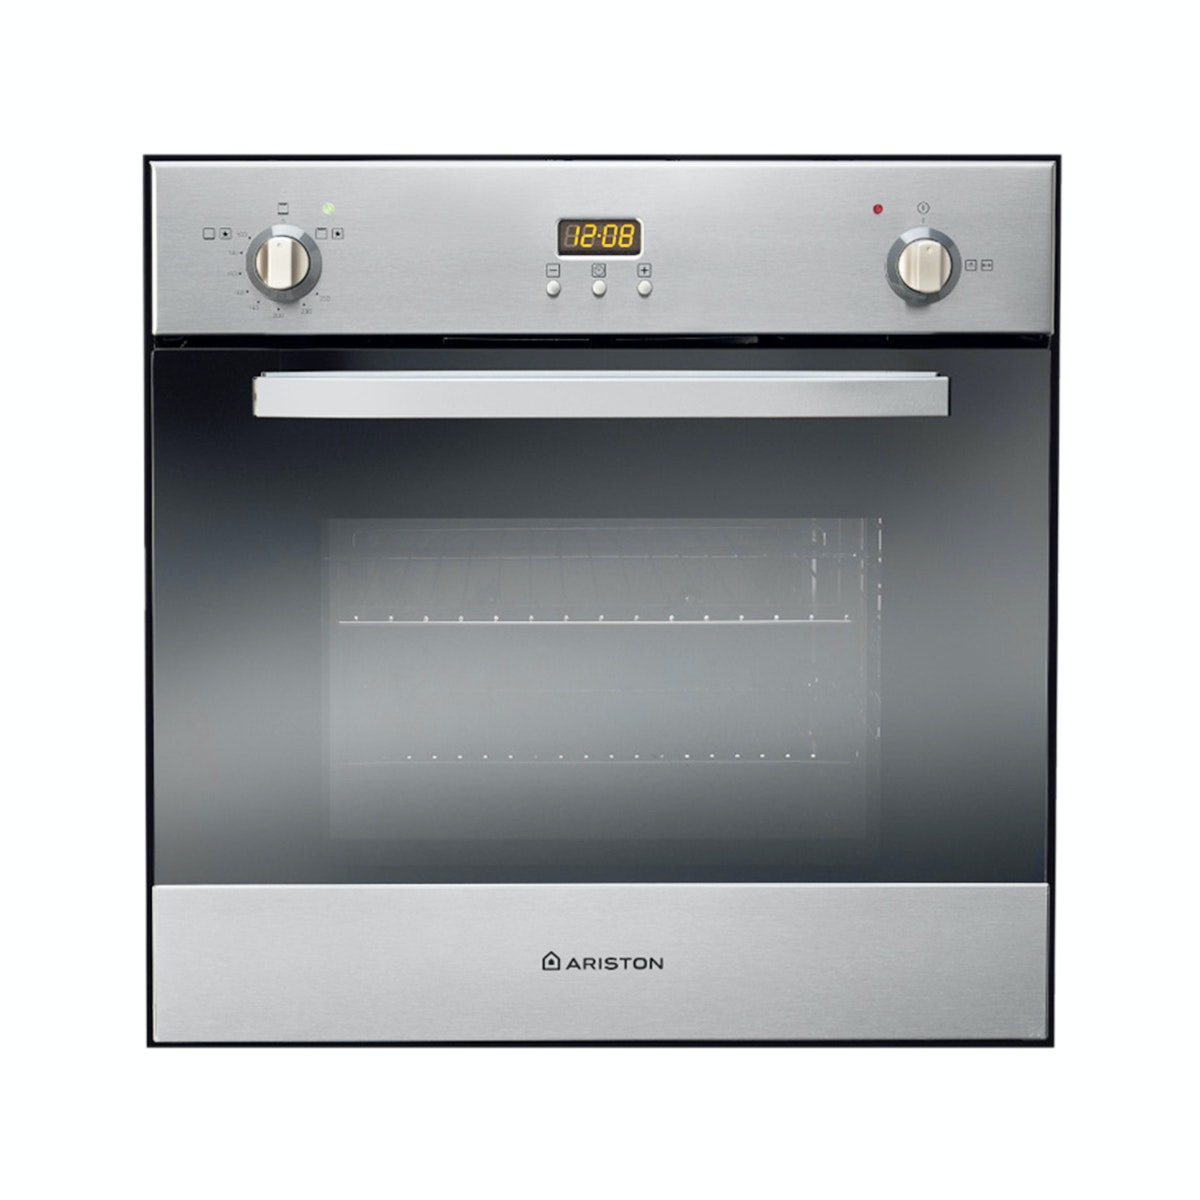 Ariston Oven Tanam Full Gas & Gas Grill 47 Liter FHYGGX